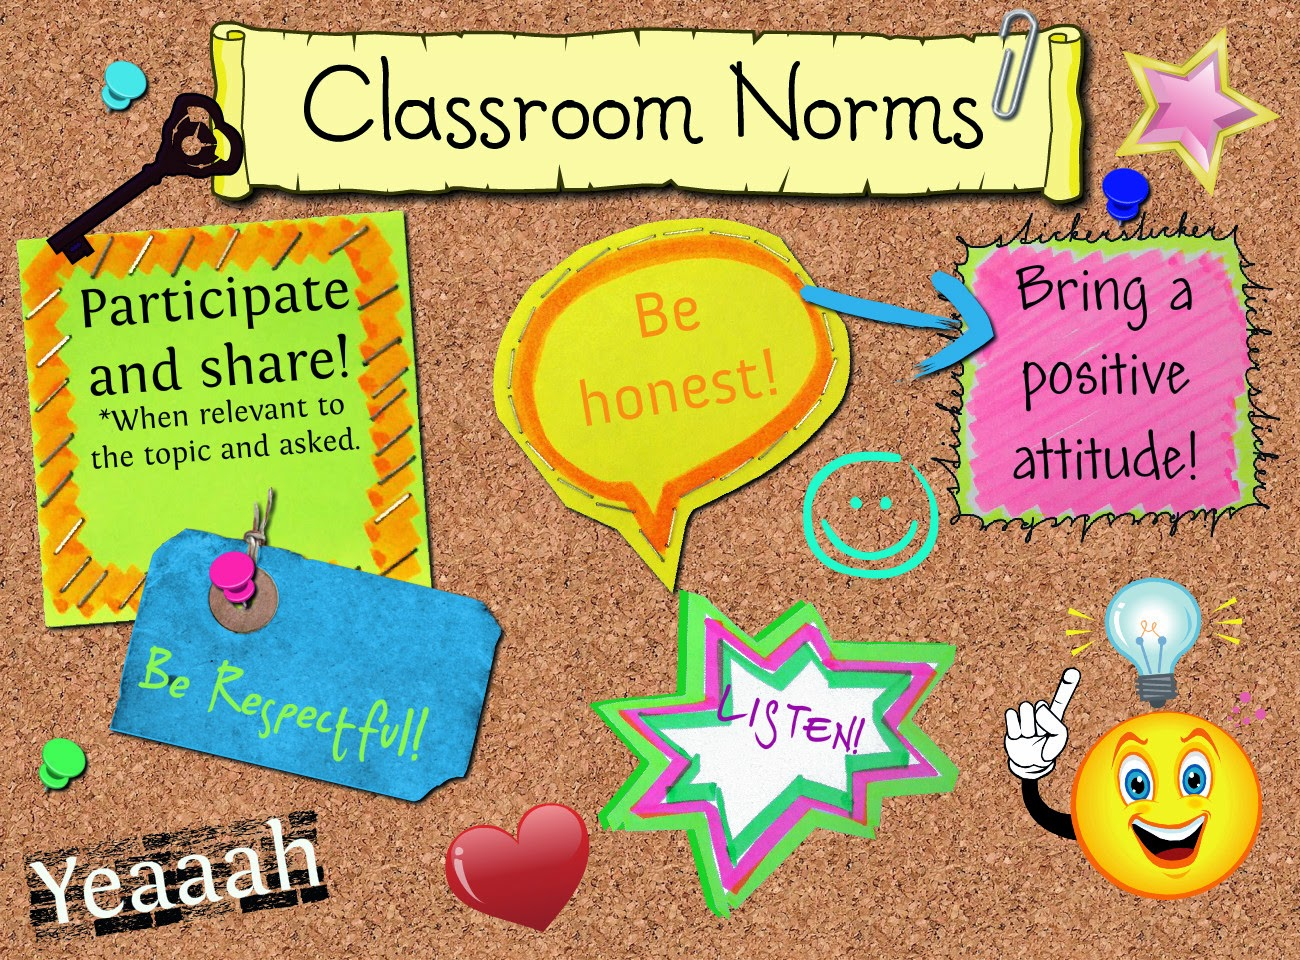 itt group theory sp2750 wed am unit 1 journal 1 classroom norms. Black Bedroom Furniture Sets. Home Design Ideas